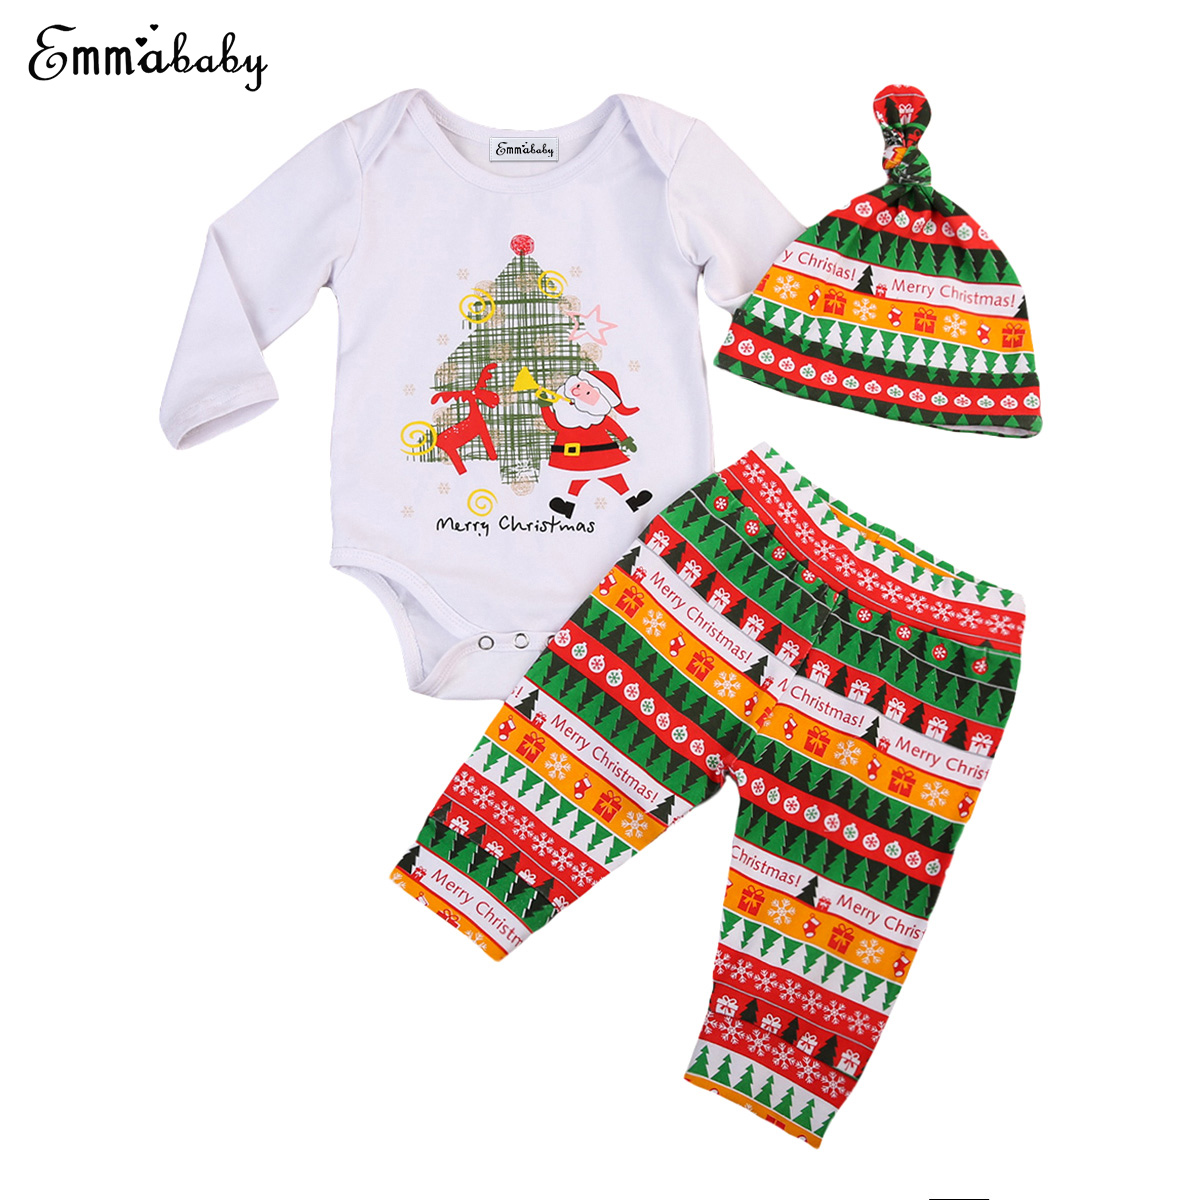 2017 Newest Arrivals Xmas Clothes Set Newborn Infant Toddler Baby Boys Girls Santa Romper Long Pants Outfit Casual Clothes Set fashion 2pcs set newborn baby girls jumpsuit toddler girls flower pattern outfit clothes romper bodysuit pants